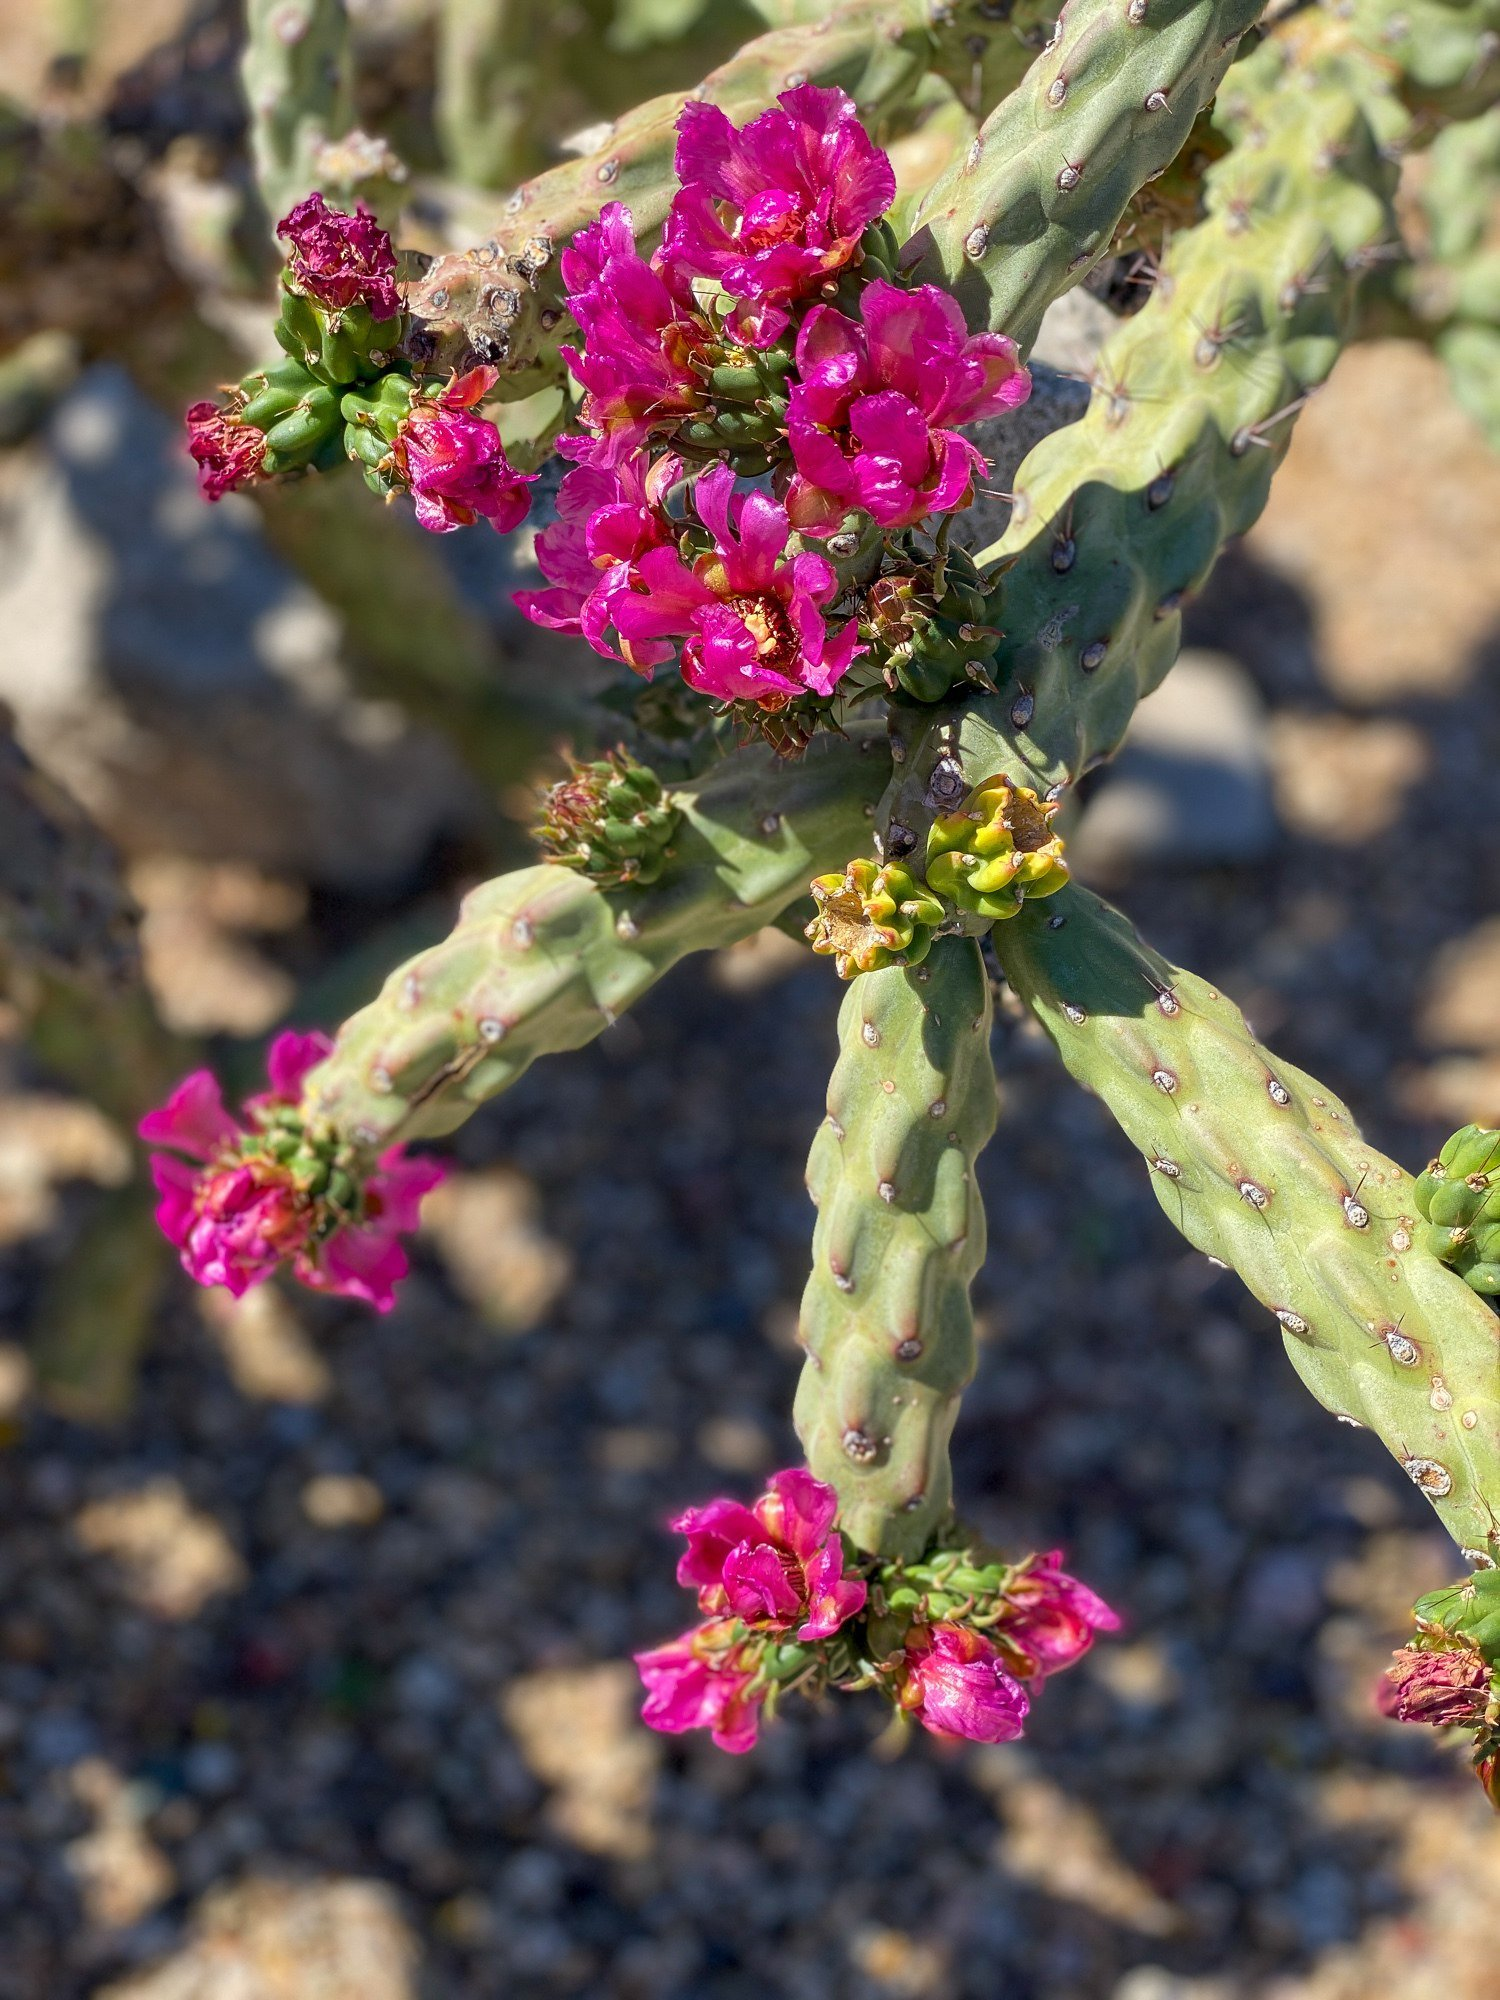 Flowering spiny cholla cactus in Arizona